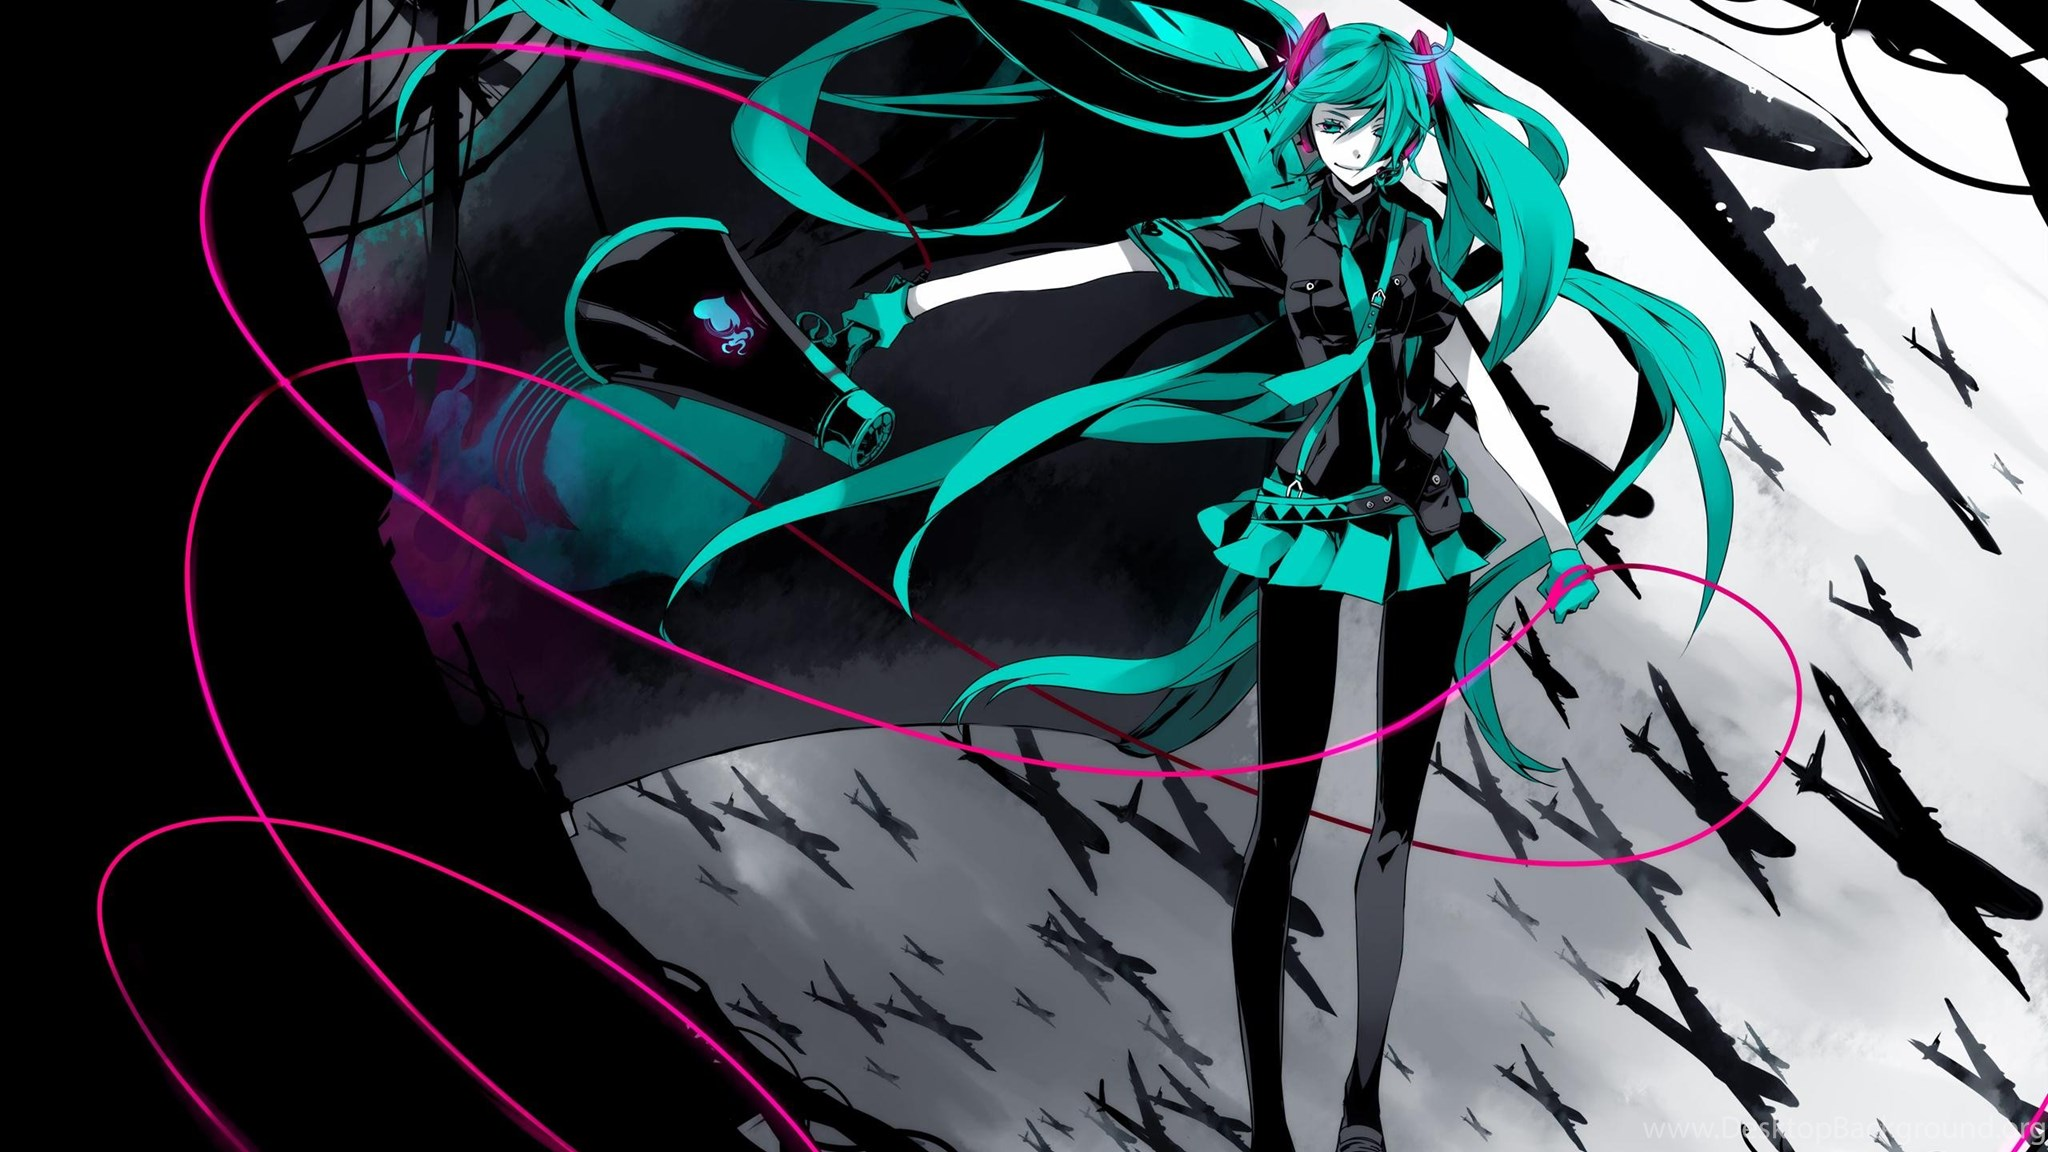 Hatsune Miku Vocaloid Wallpapers Desktop Background